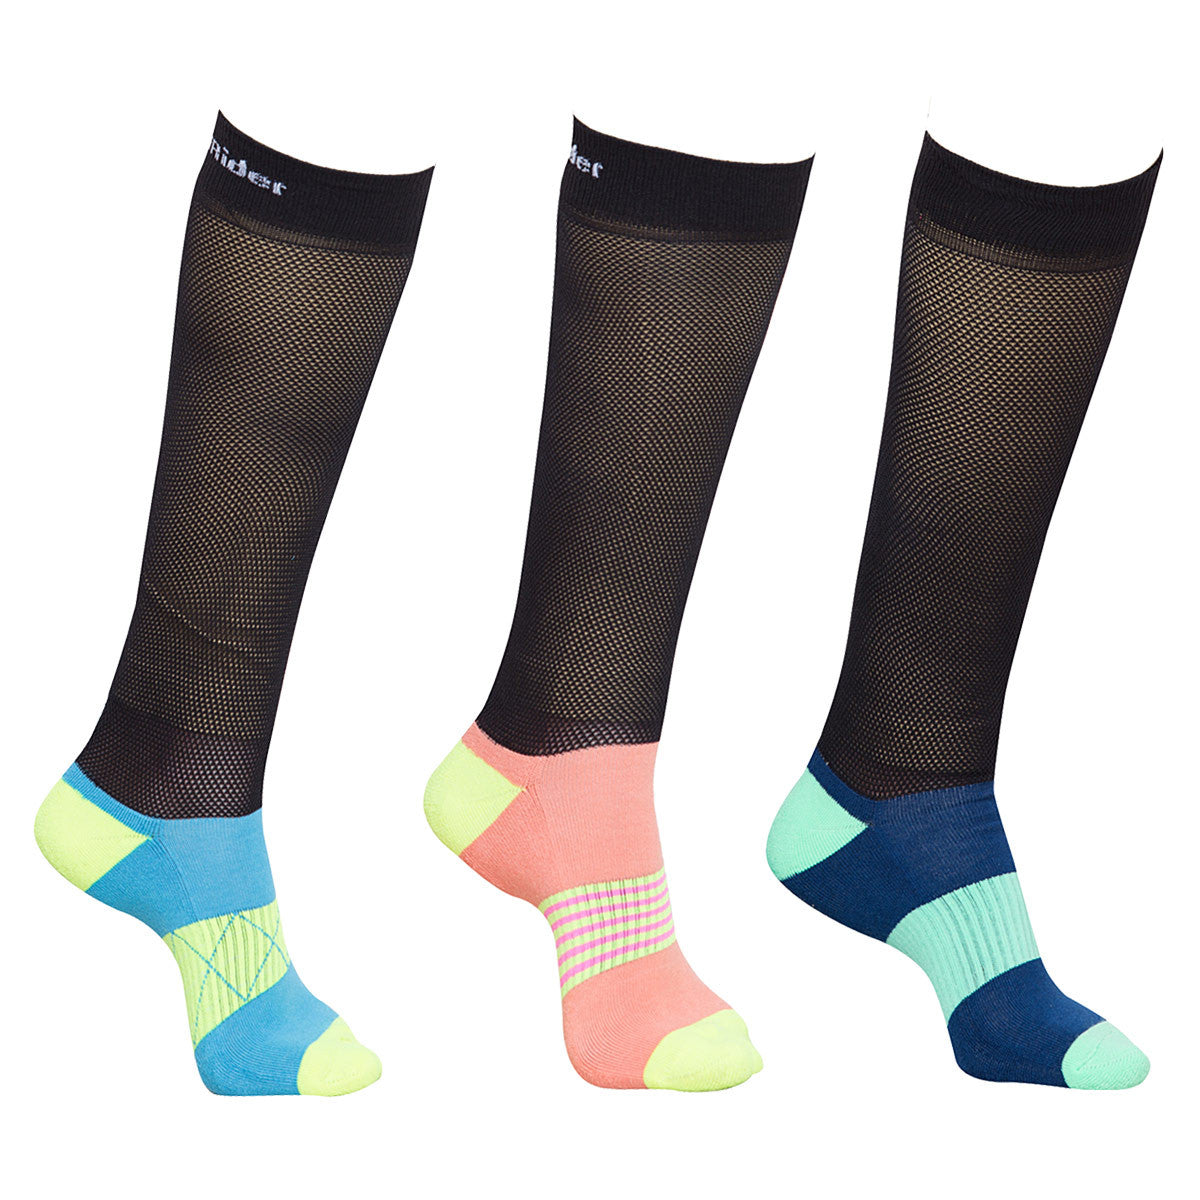 TuffRider EquiCool Ventilated Riding Socks-3 pack_1675